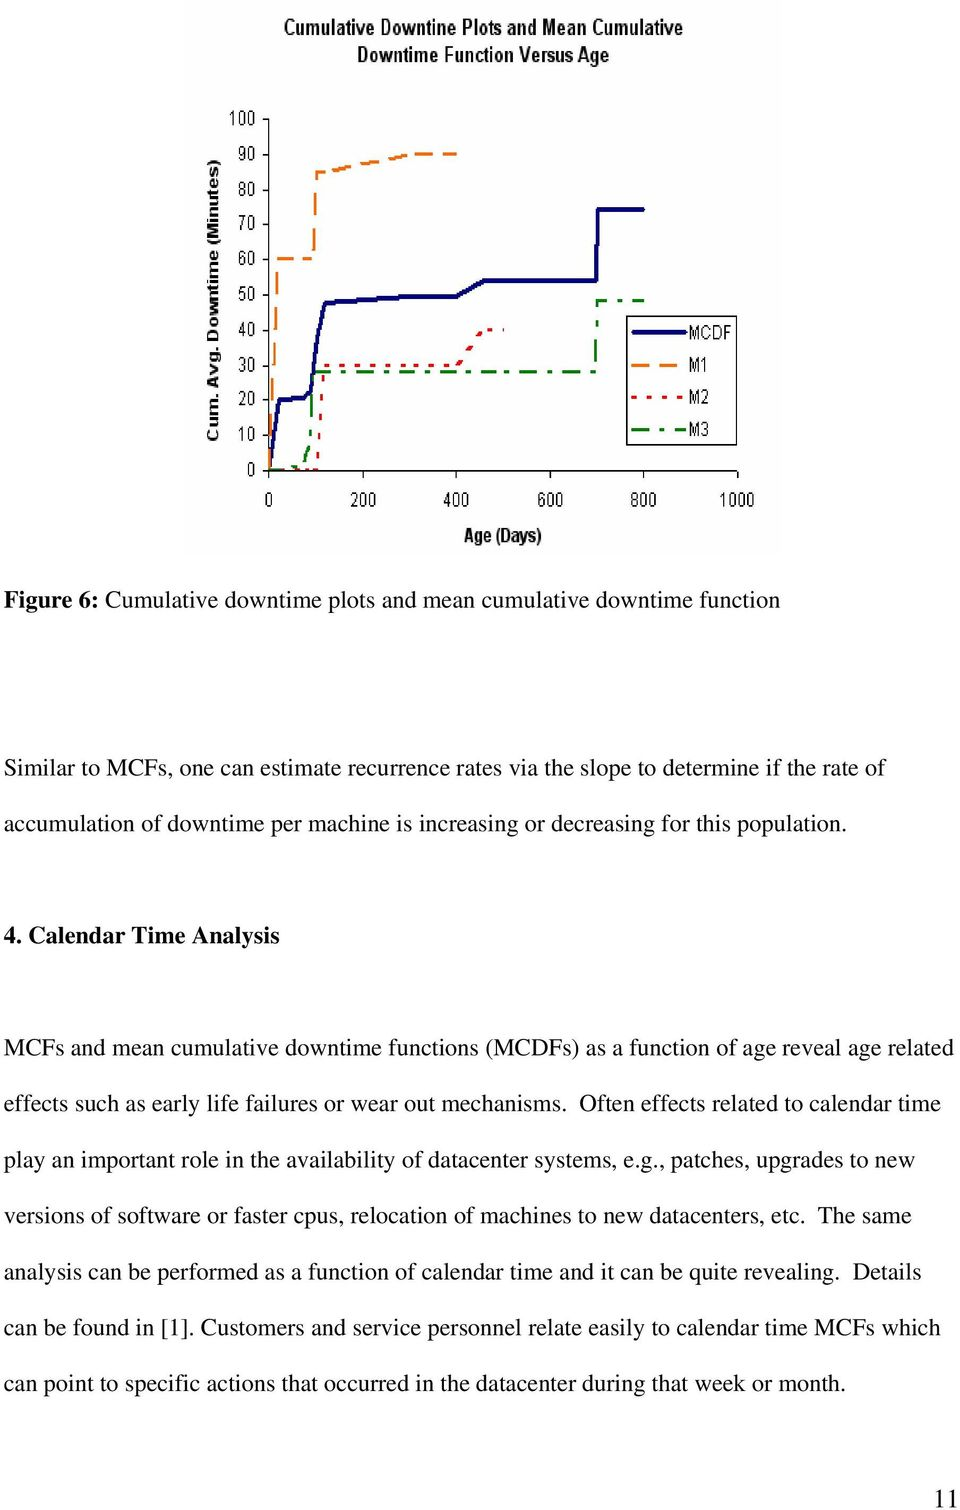 Calendar Time Analysis MCFs and mean cumulative downtime functions (MCDFs) as a function of age reveal age related effects such as early life failures or wear out mechanisms.